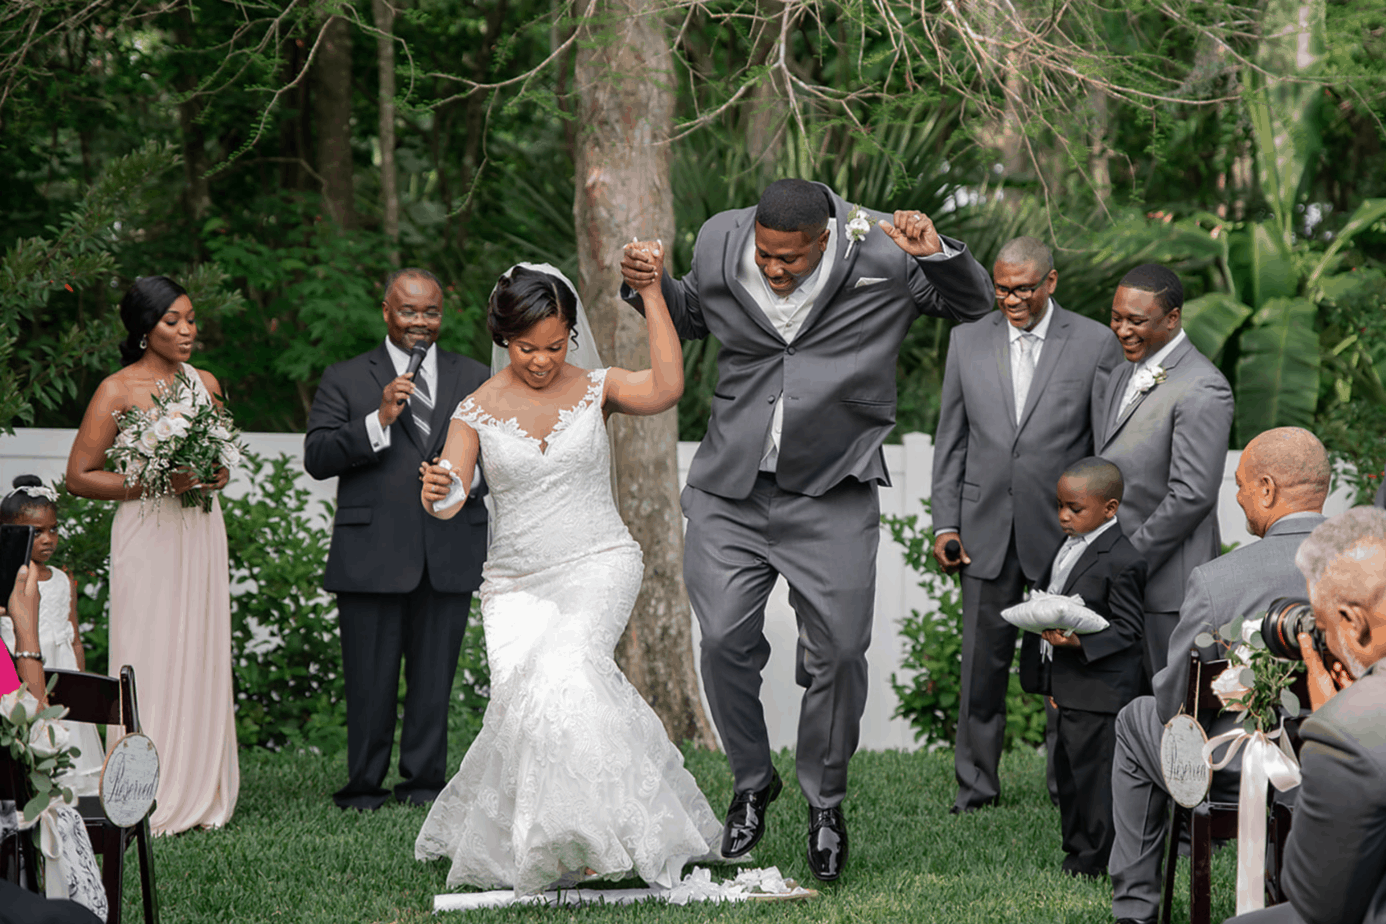 7 Timeless Wedding Traditions To Make Your Day Memorable